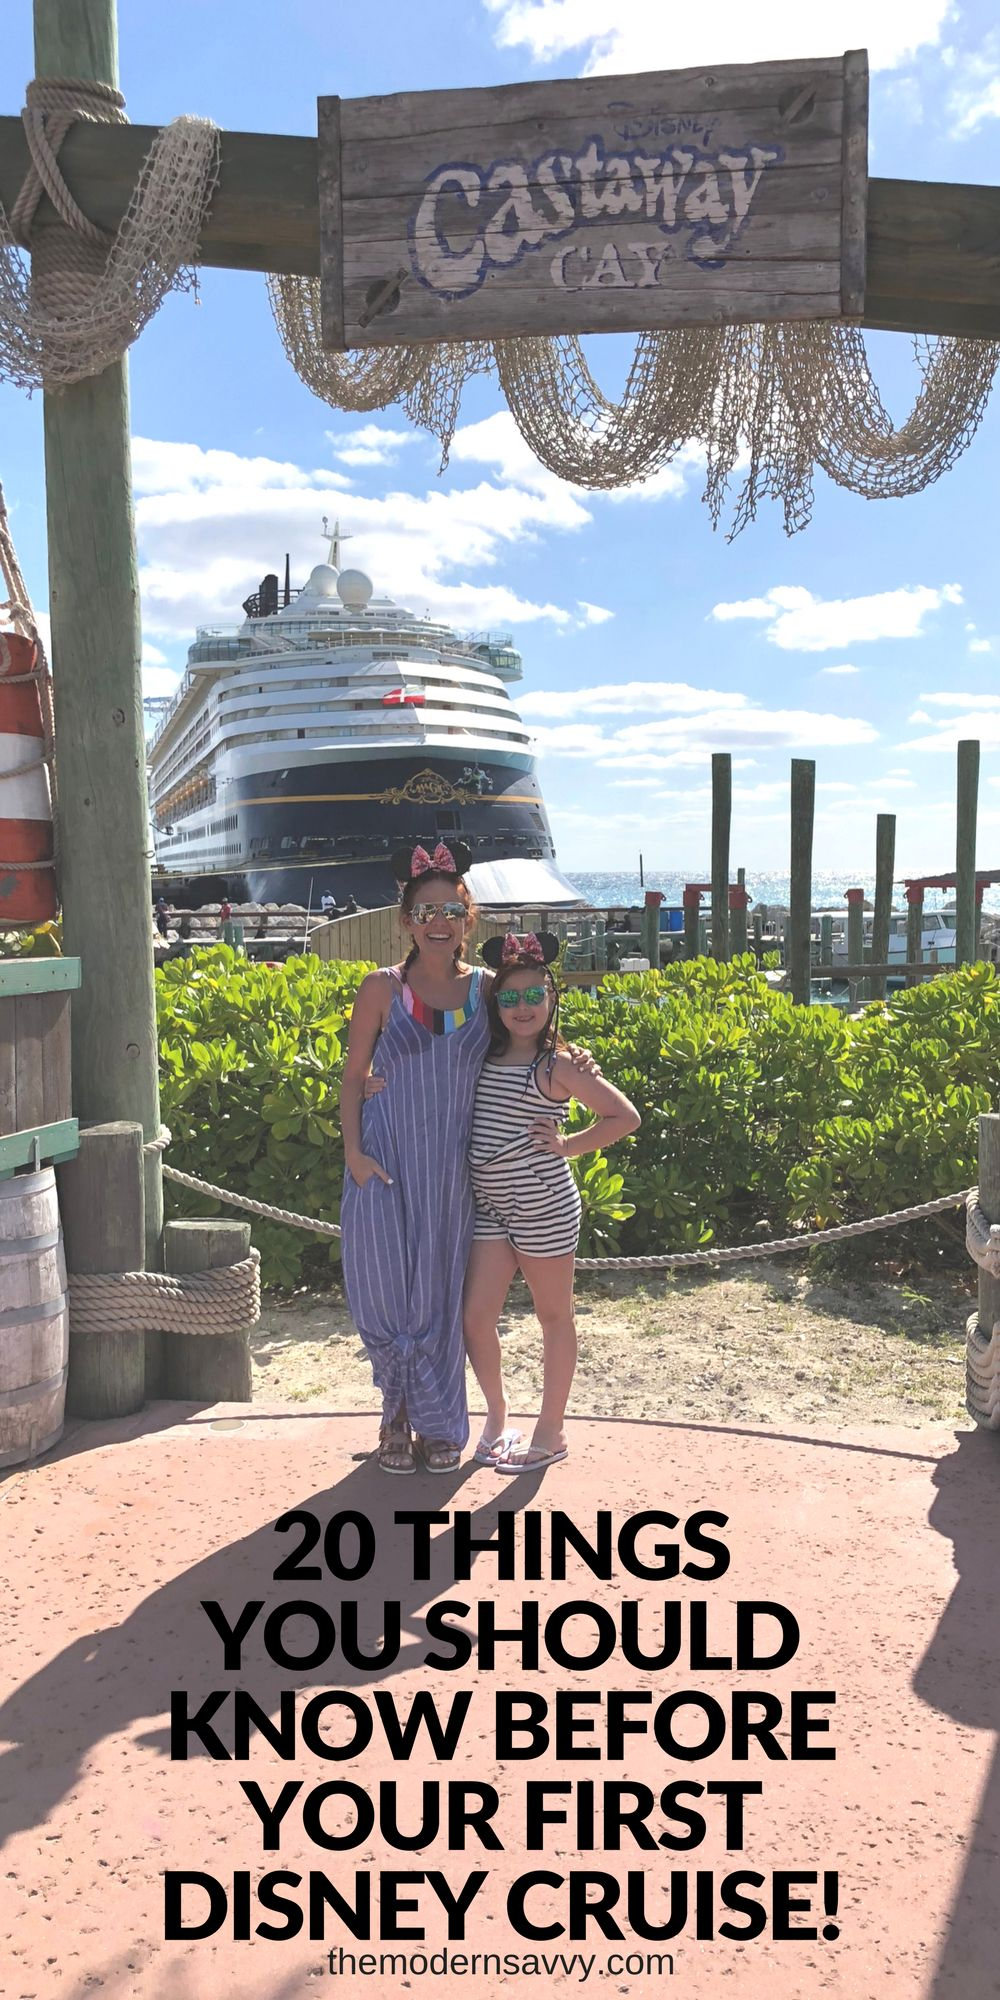 20 Things You Should Know Before Your FIrst Disney Cruise -- what to bring, what to expect, how to pack // the modern savvy, a florida-based life and style blog